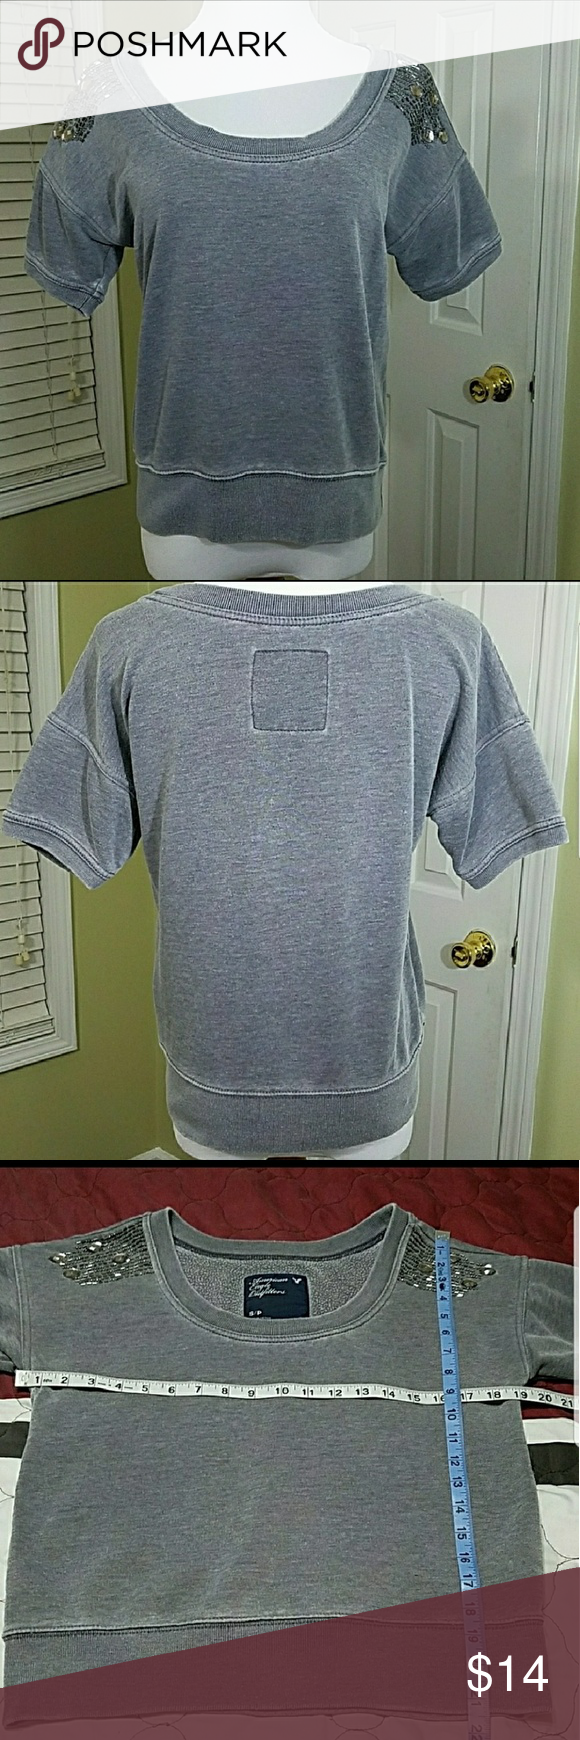 American eagle outfitters short sleeve sweatshirt American Eagle Outfitters short sleeve sweat shirt with embellishments at shoulders. In good condition.  Approximate measurement shown in pictures.  Materials shown in pictures. American Eagle Outfitters Tops